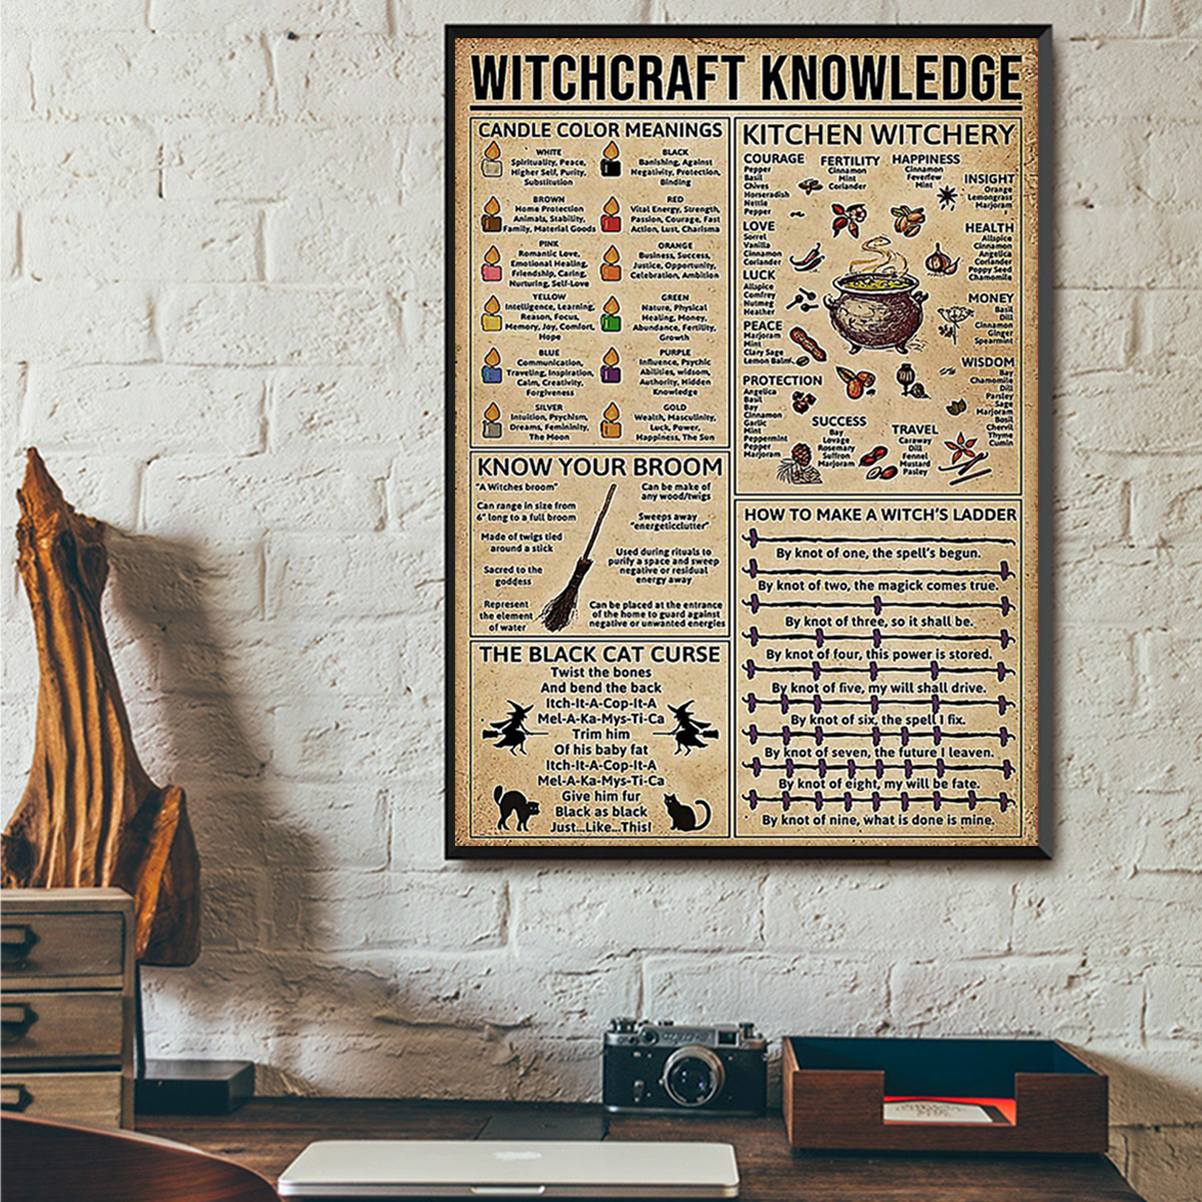 Witchcraft knowledge poster A2